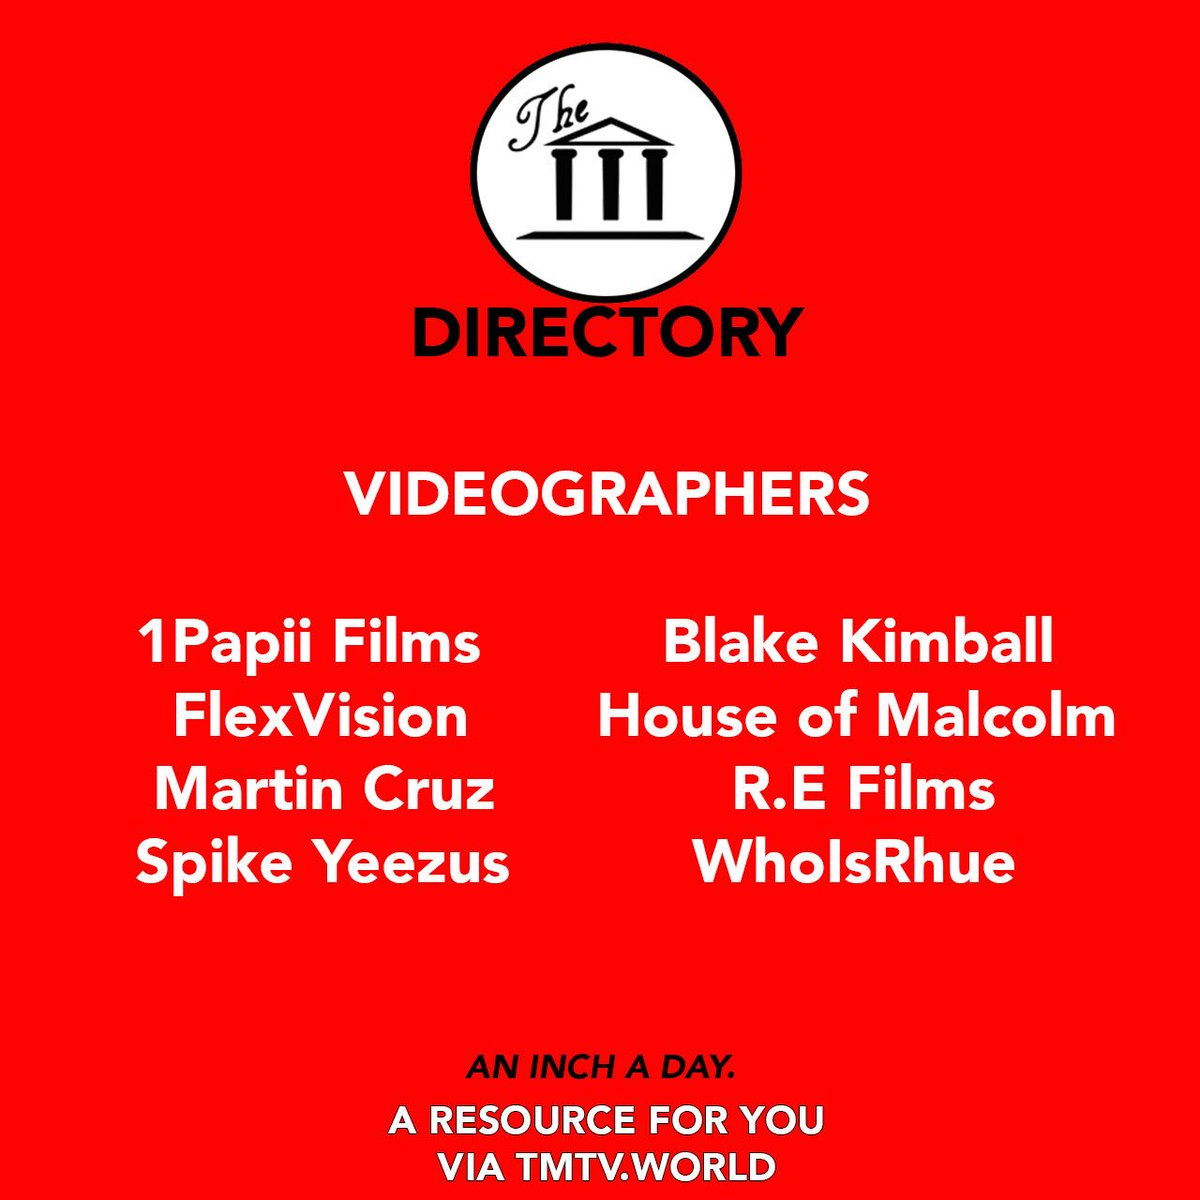 All of These Videographers via our #Directory &amp; You Still don't have Video for your Music, Brand or Business? #TMTV  http:// tmtv.world/the-directory/  &nbsp;  <br>http://pic.twitter.com/aagjbjRjQH